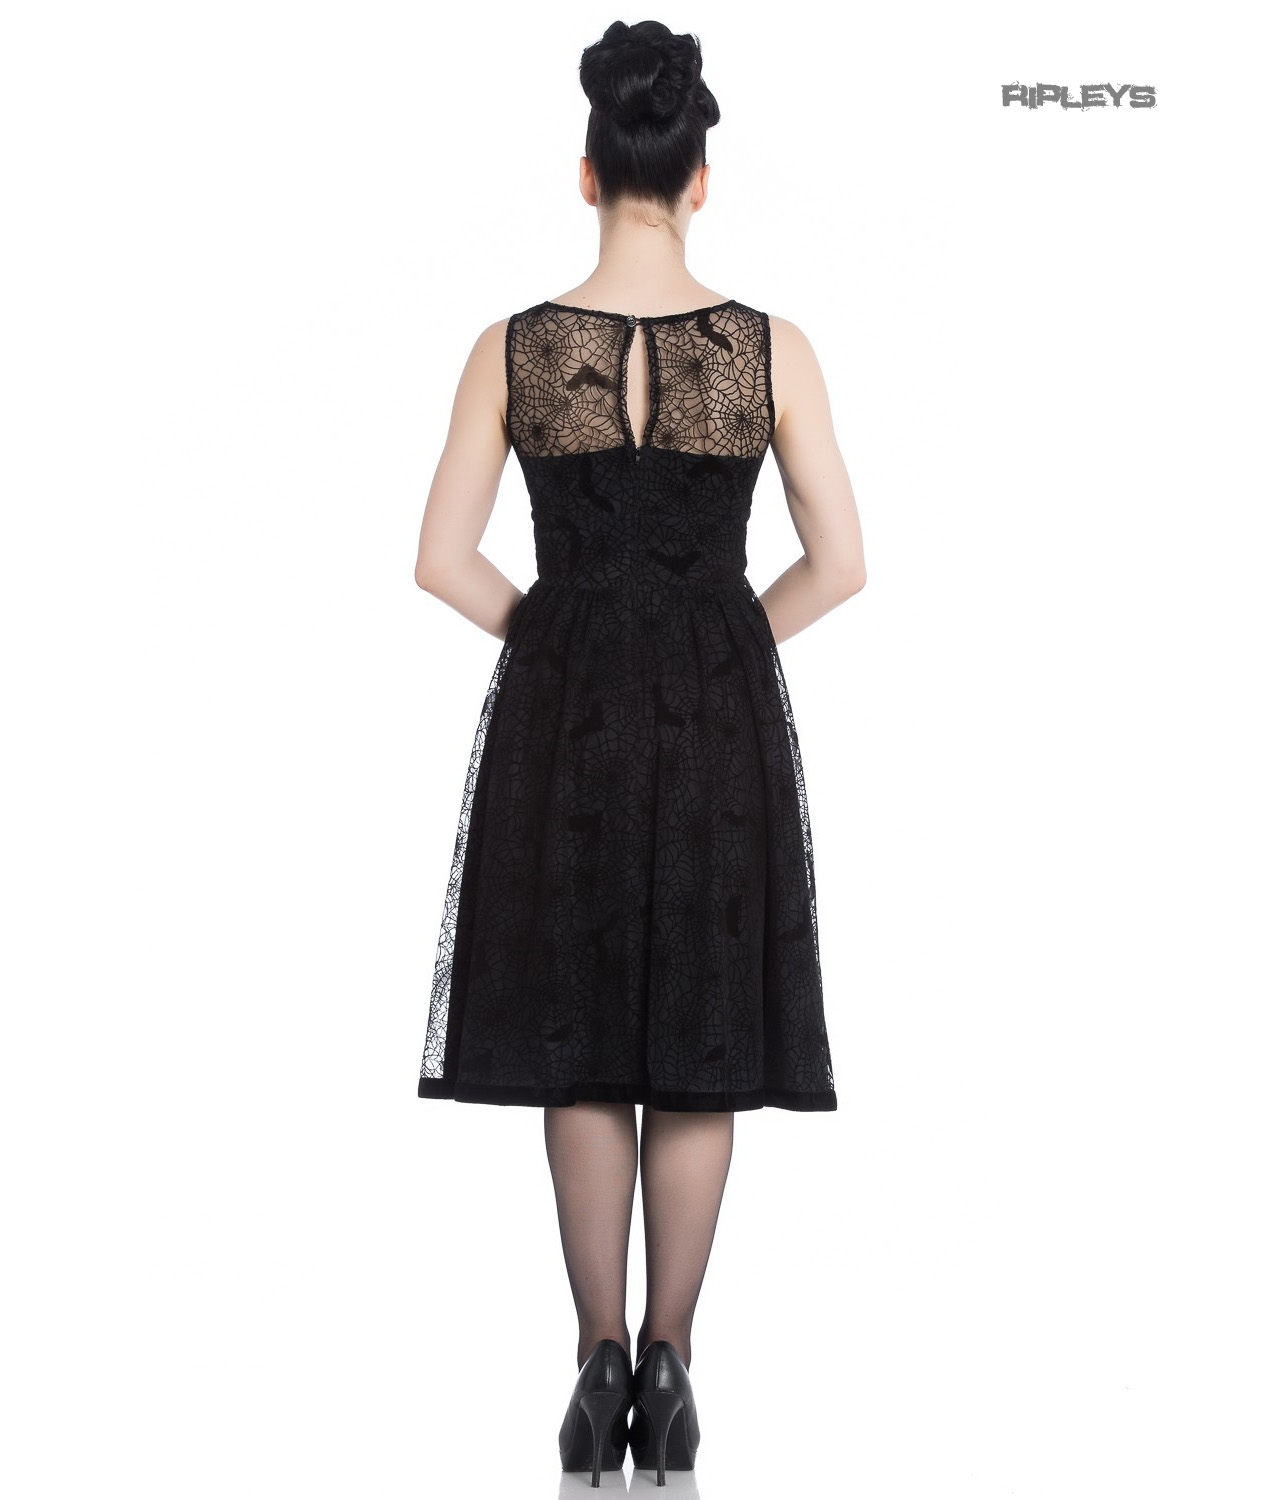 Hell-Bunny-50s-Black-Gothic-Net-Dress-Witchy-AMARANDE-Spiders-Bats-All-Sizes thumbnail 8